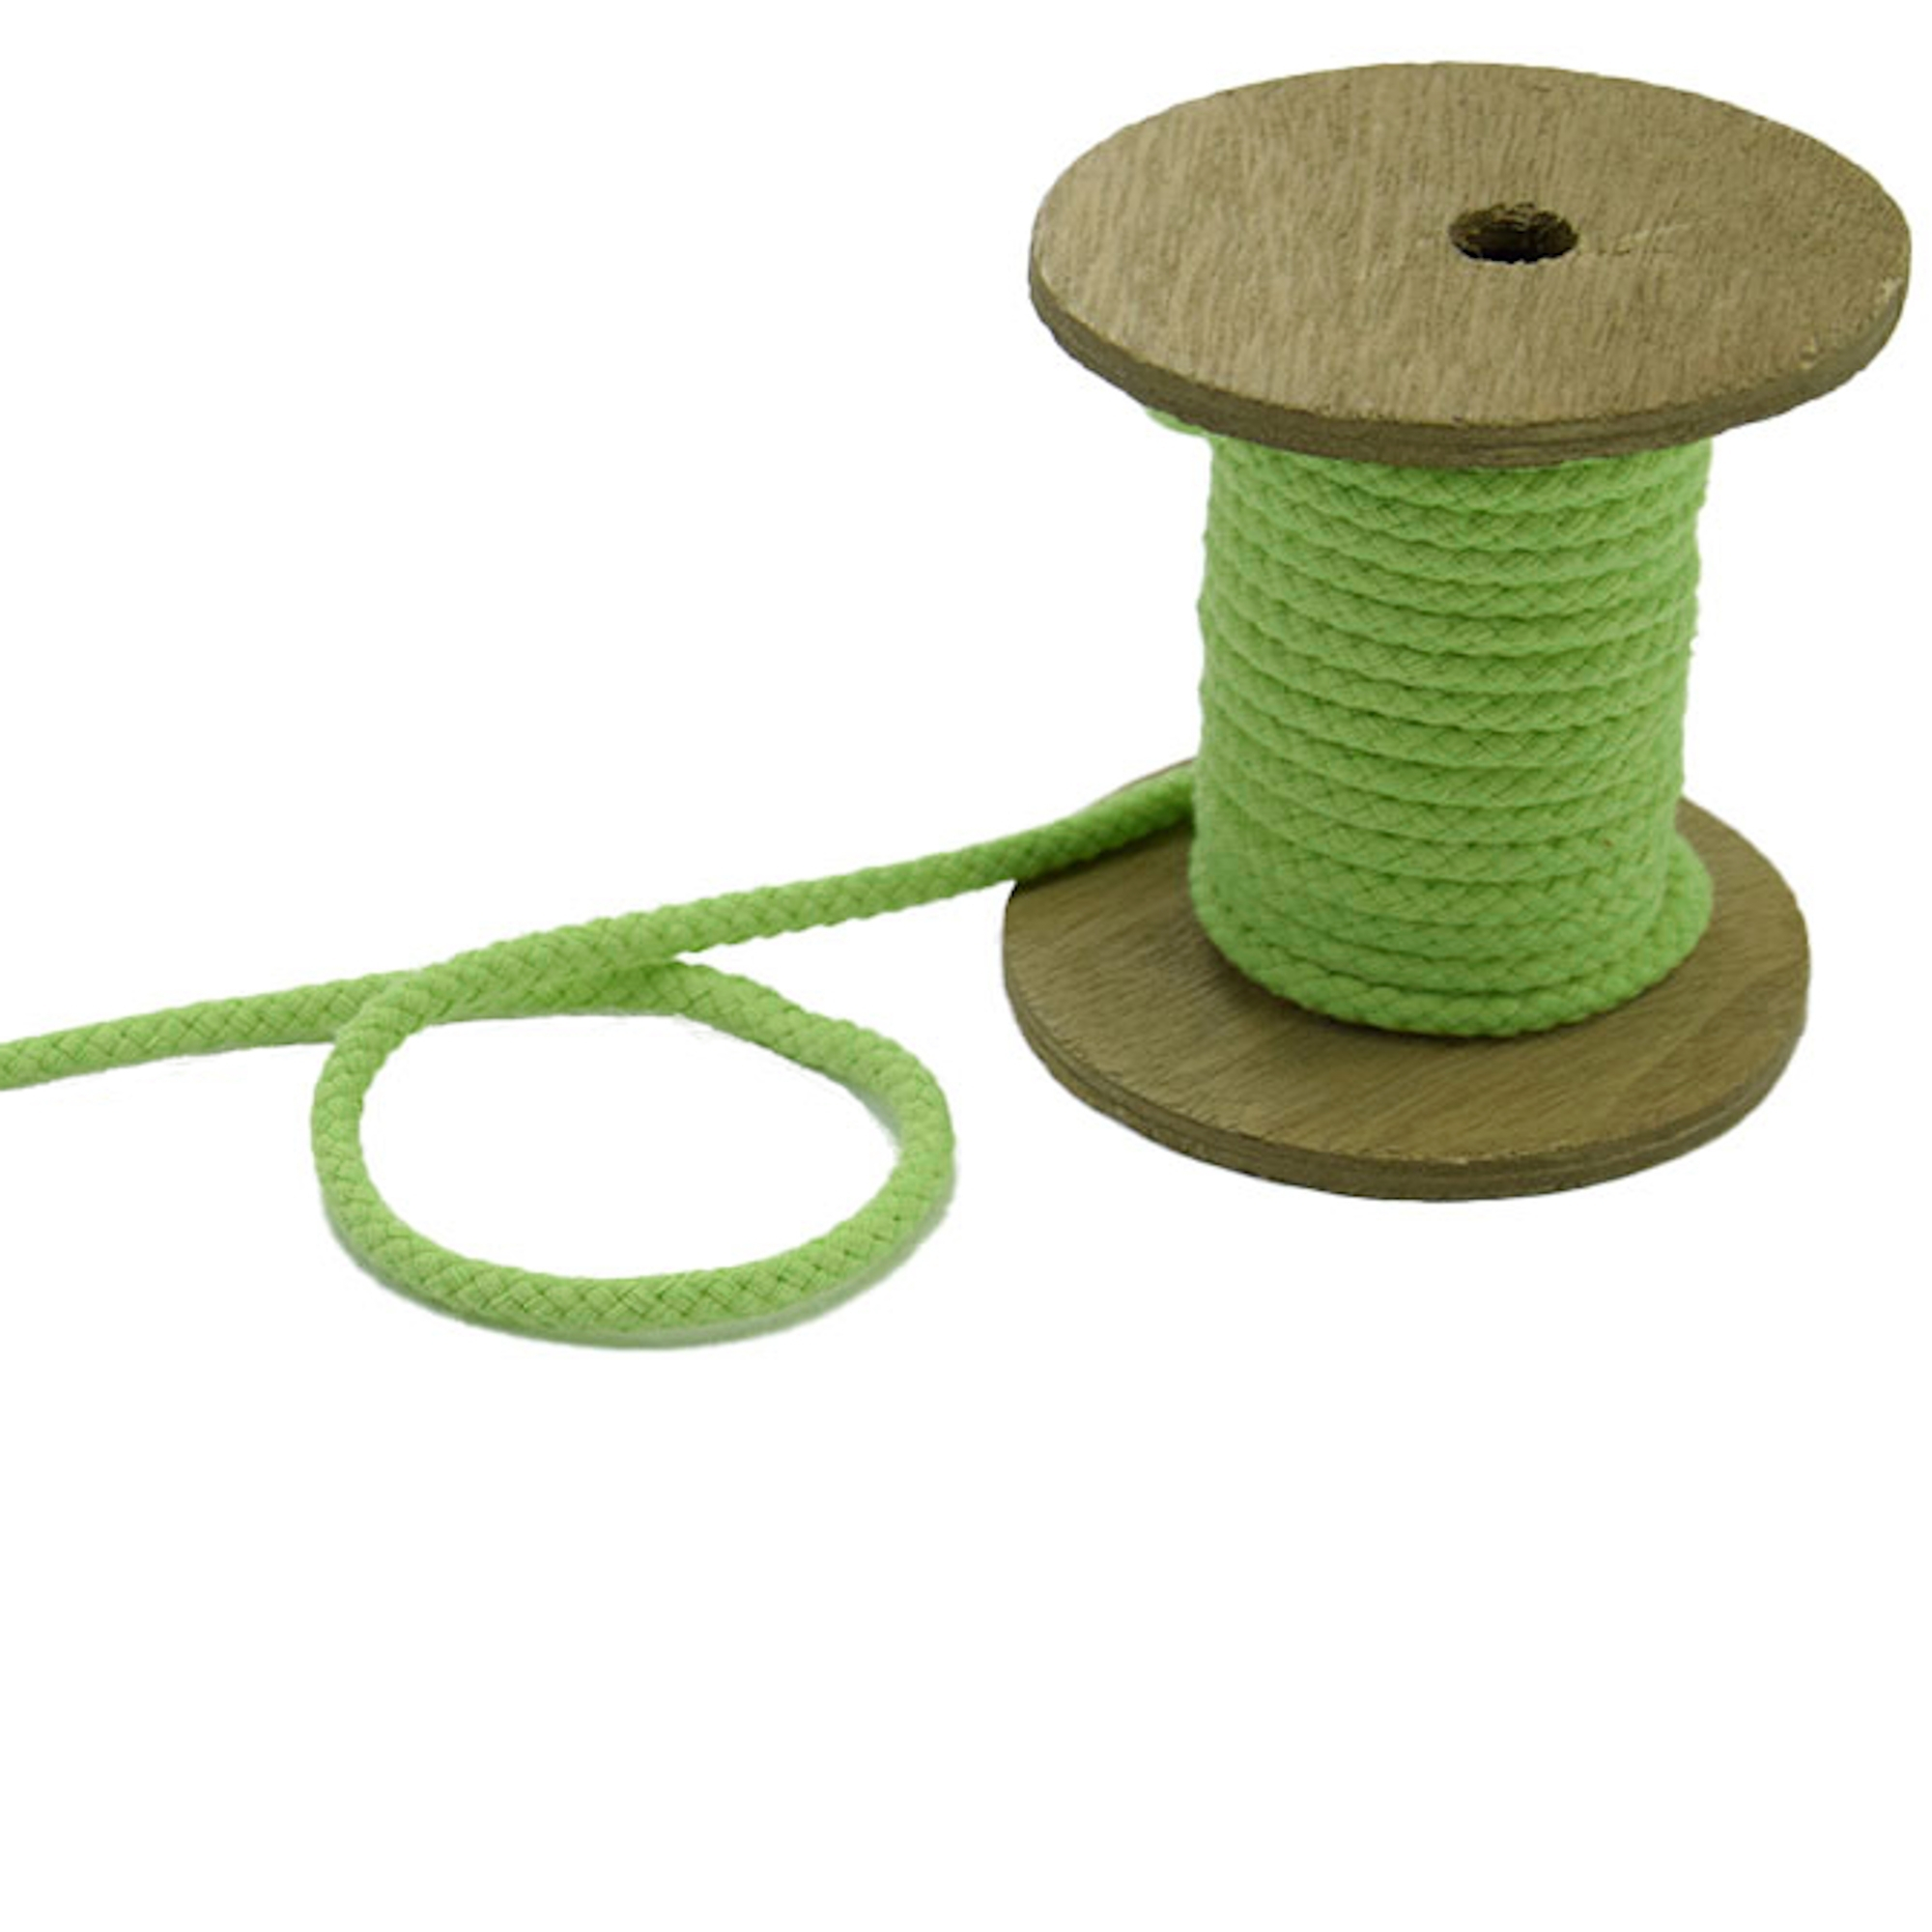 Corde pour veste 5 mm, light green | 42273 | grün